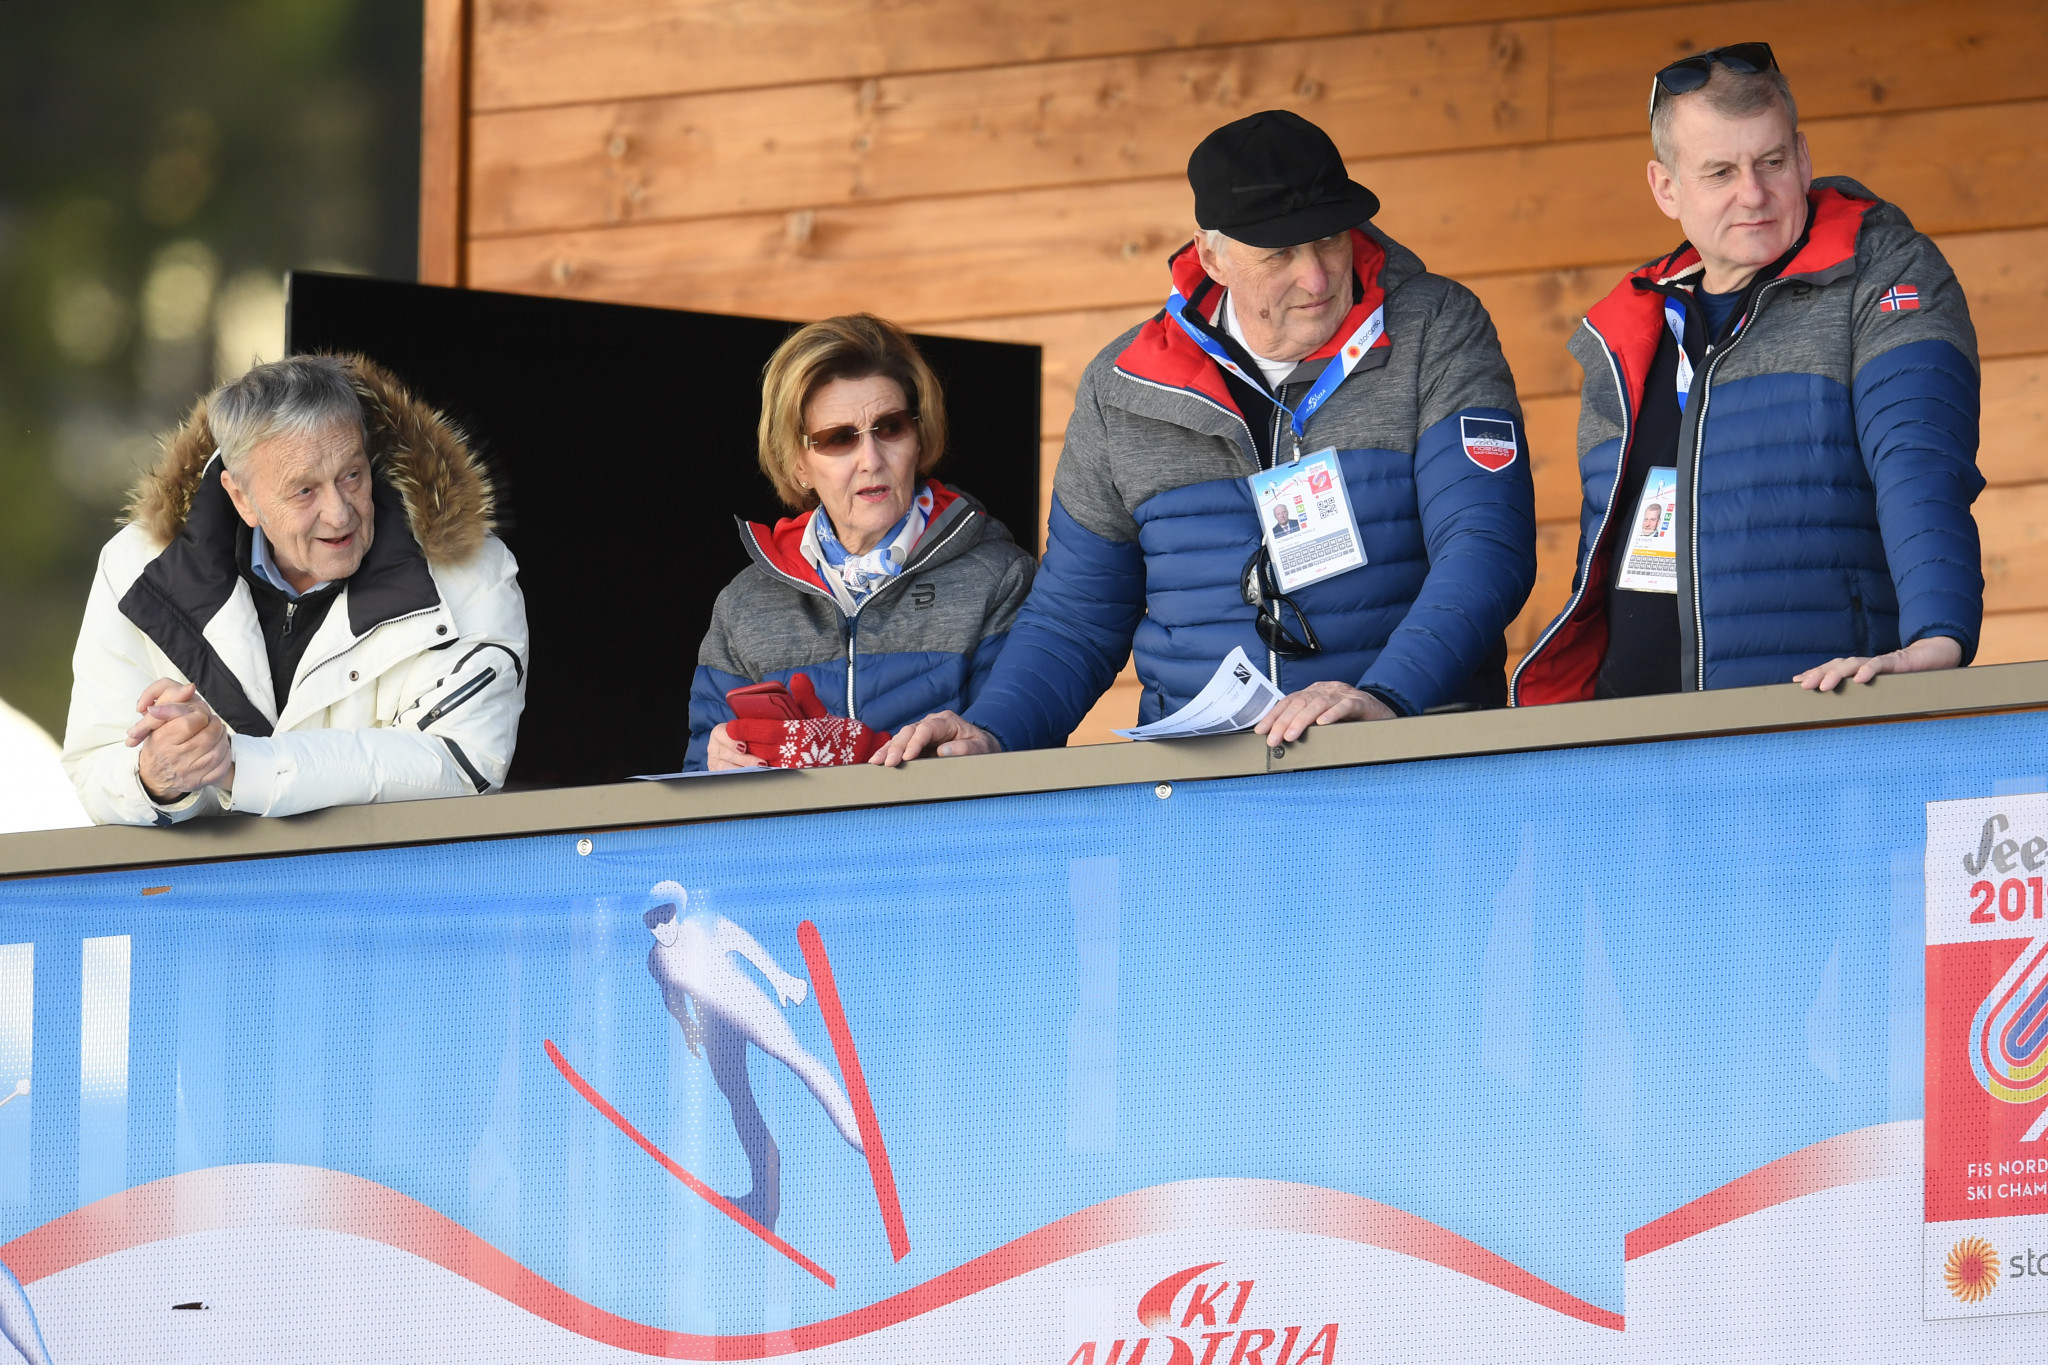 FIS President Gian-Franco Kasper, left, was criticised earlier this year for referring to